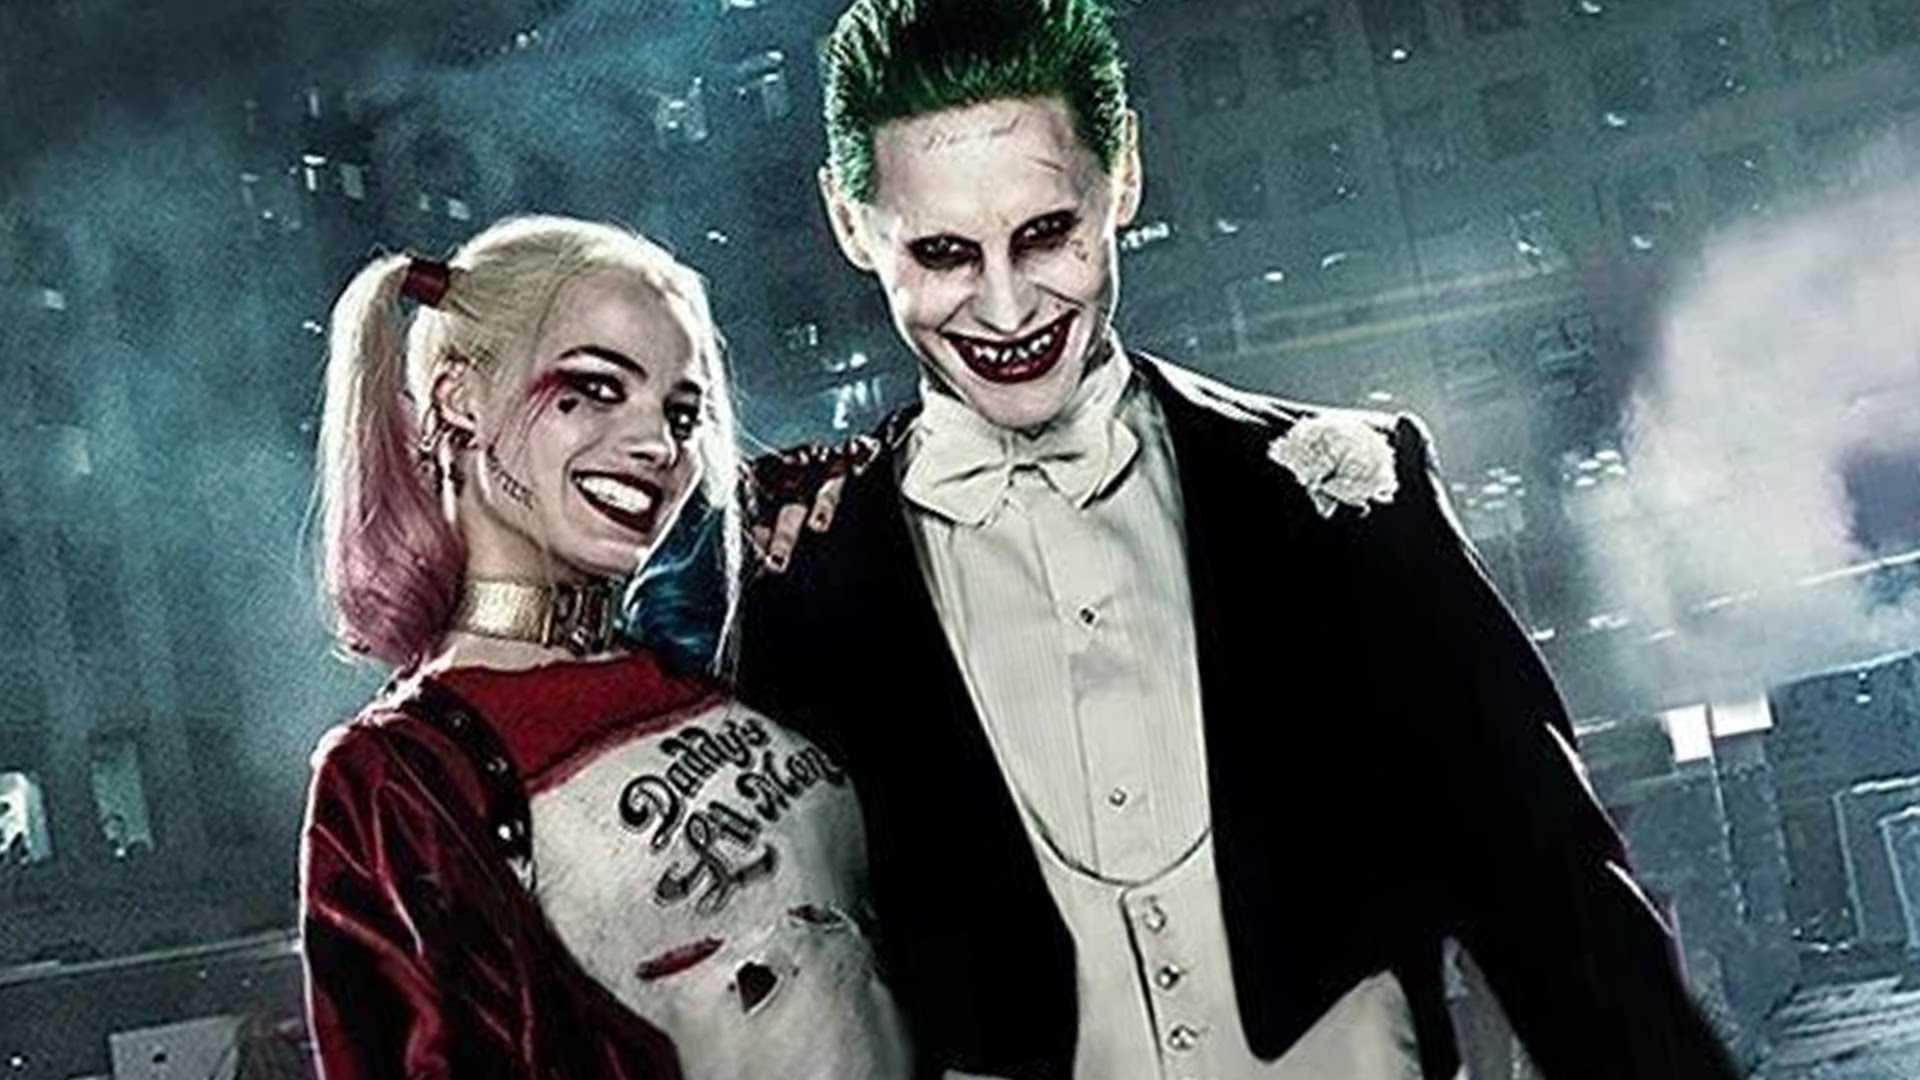 Joker Suicide Squad Wallpapers 83 Images